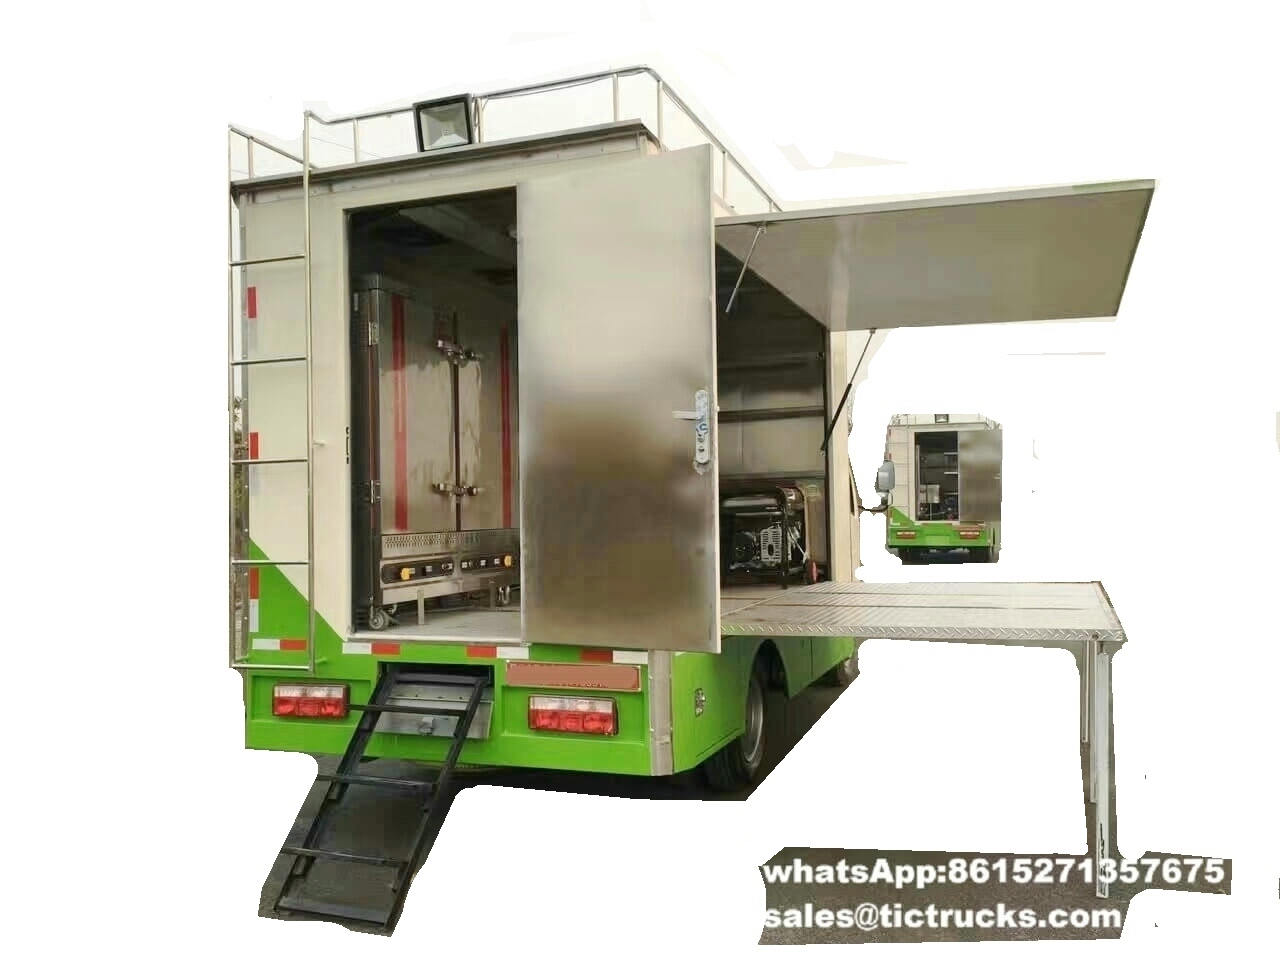 dongfeng food cooking truck-006-_1.jpg